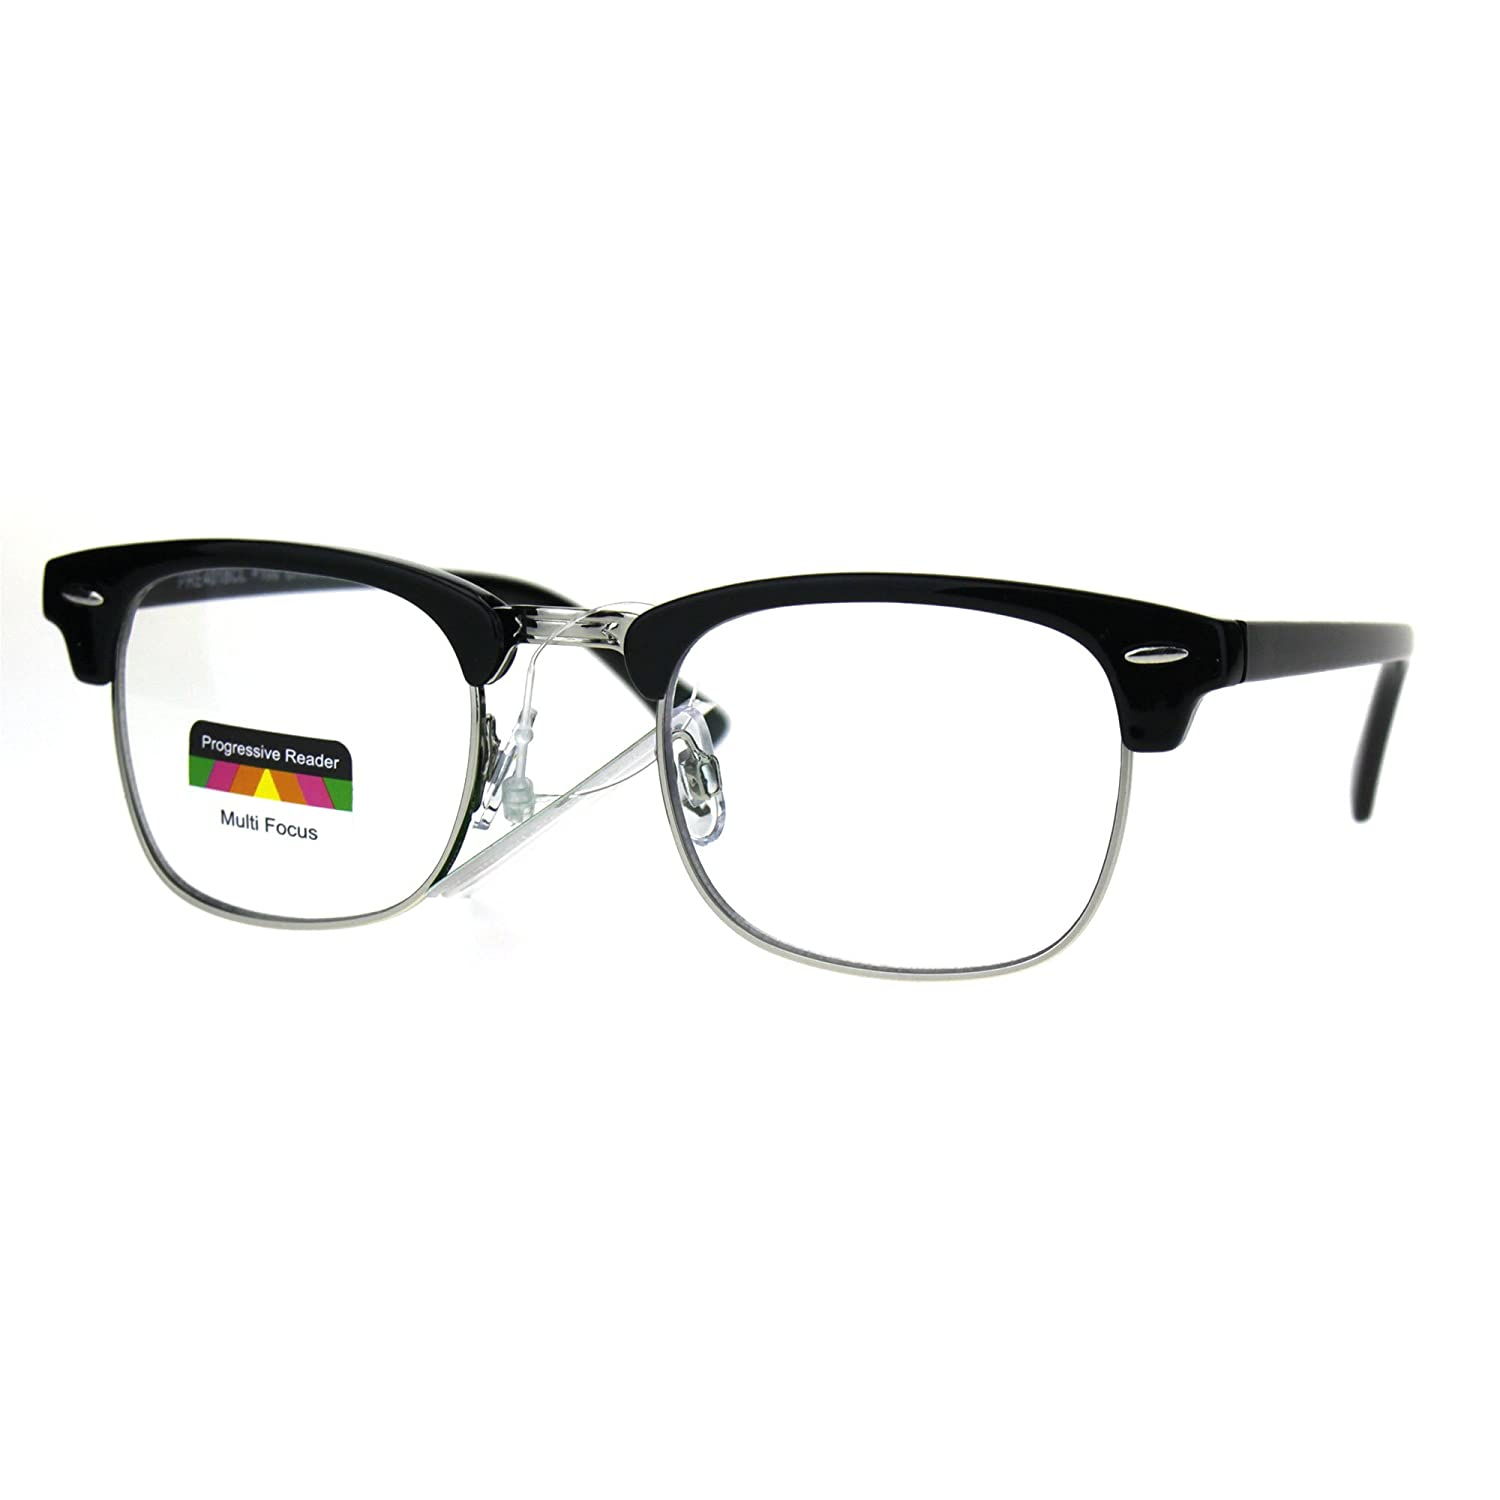 f6197a40903 Half horn rim hipster multi focus progressive reading glasses black silver  clothing jpg 1500x1500 Hipster reading